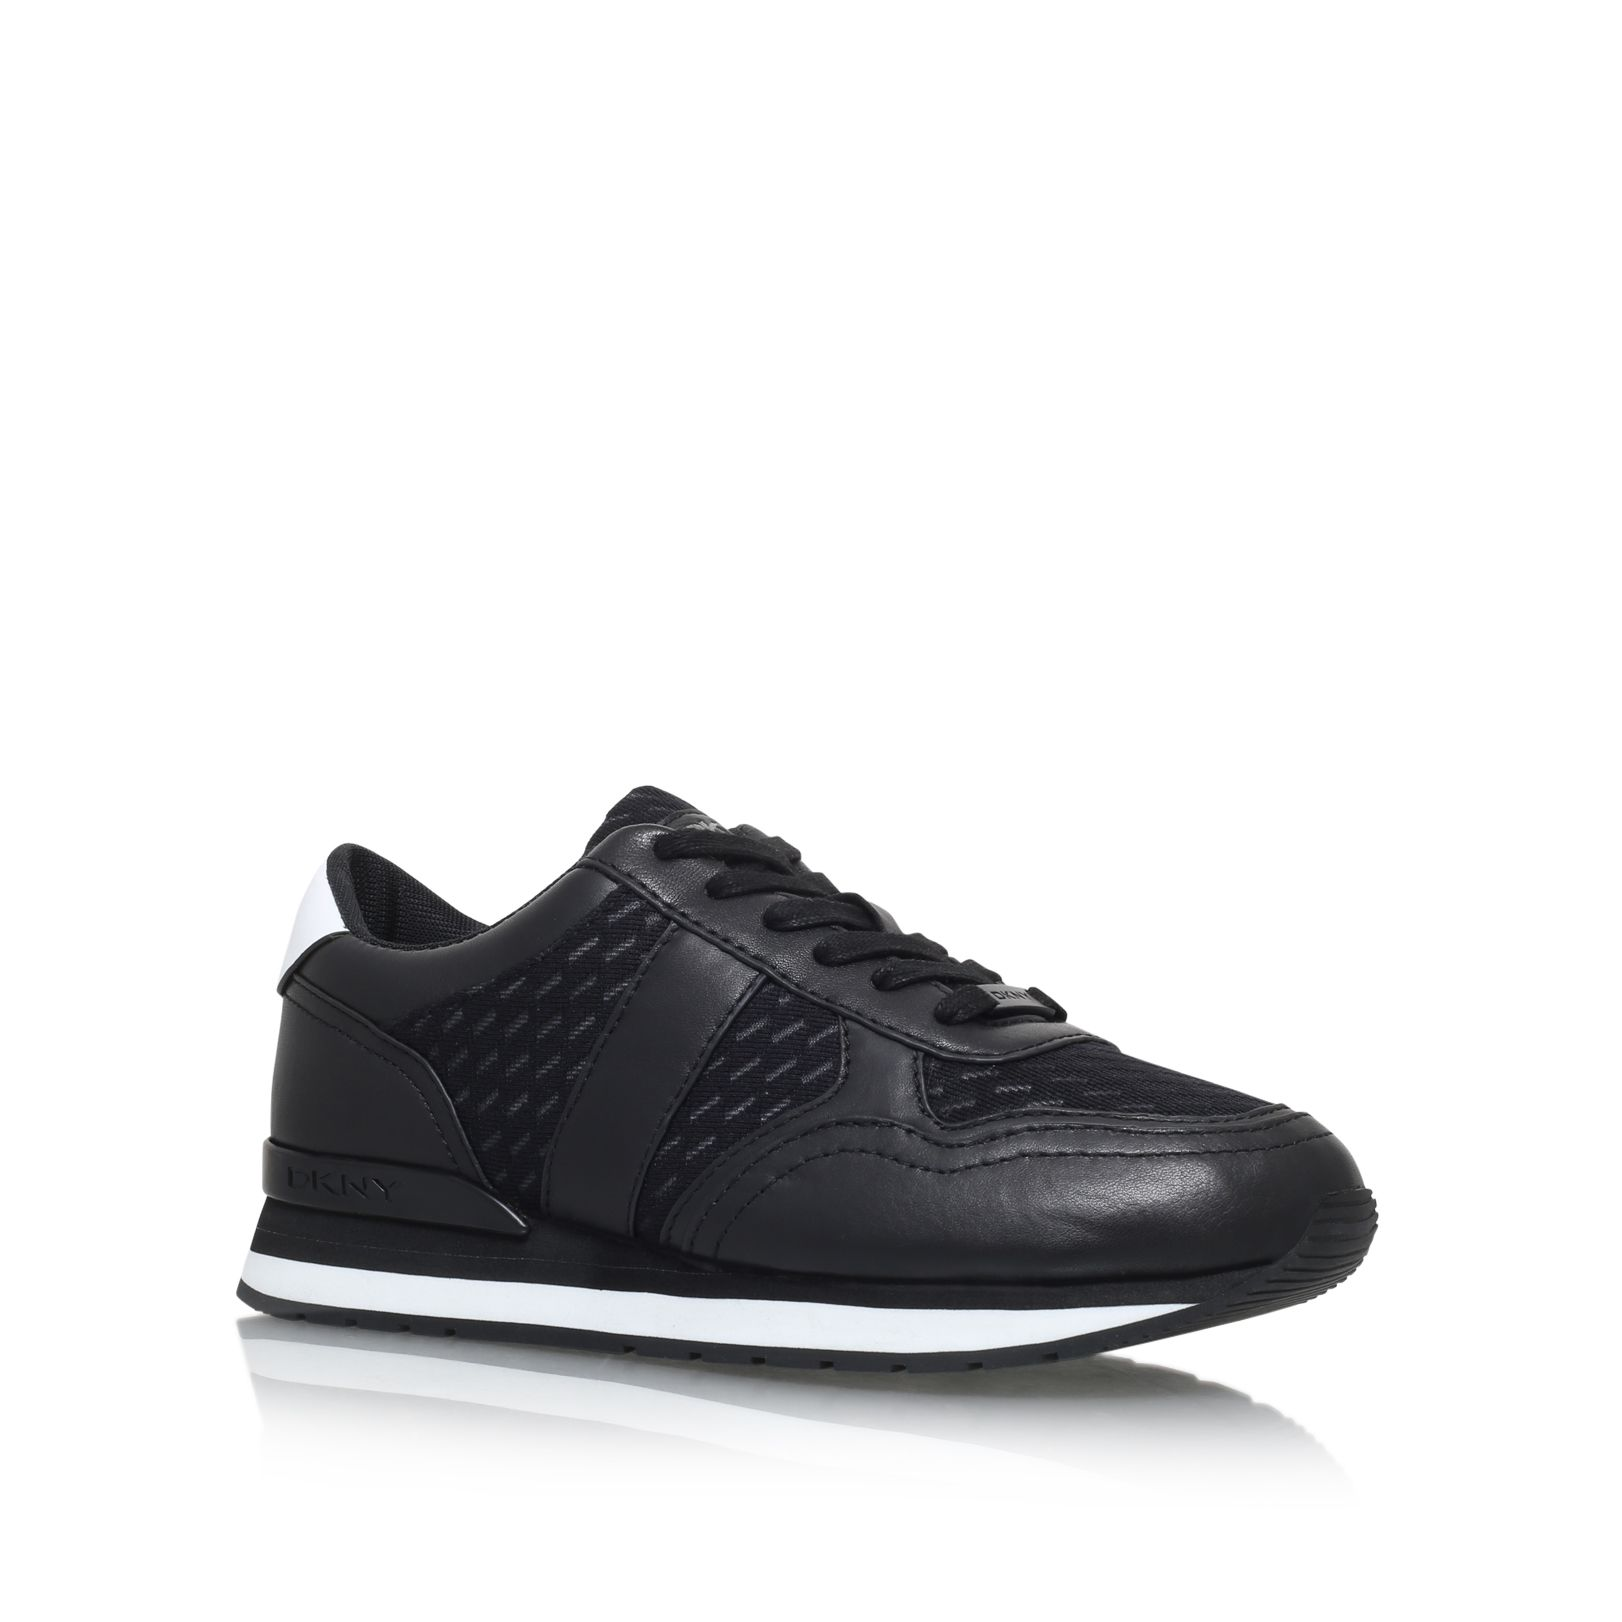 DKNY Jamie sport flat lace up sneakers Black